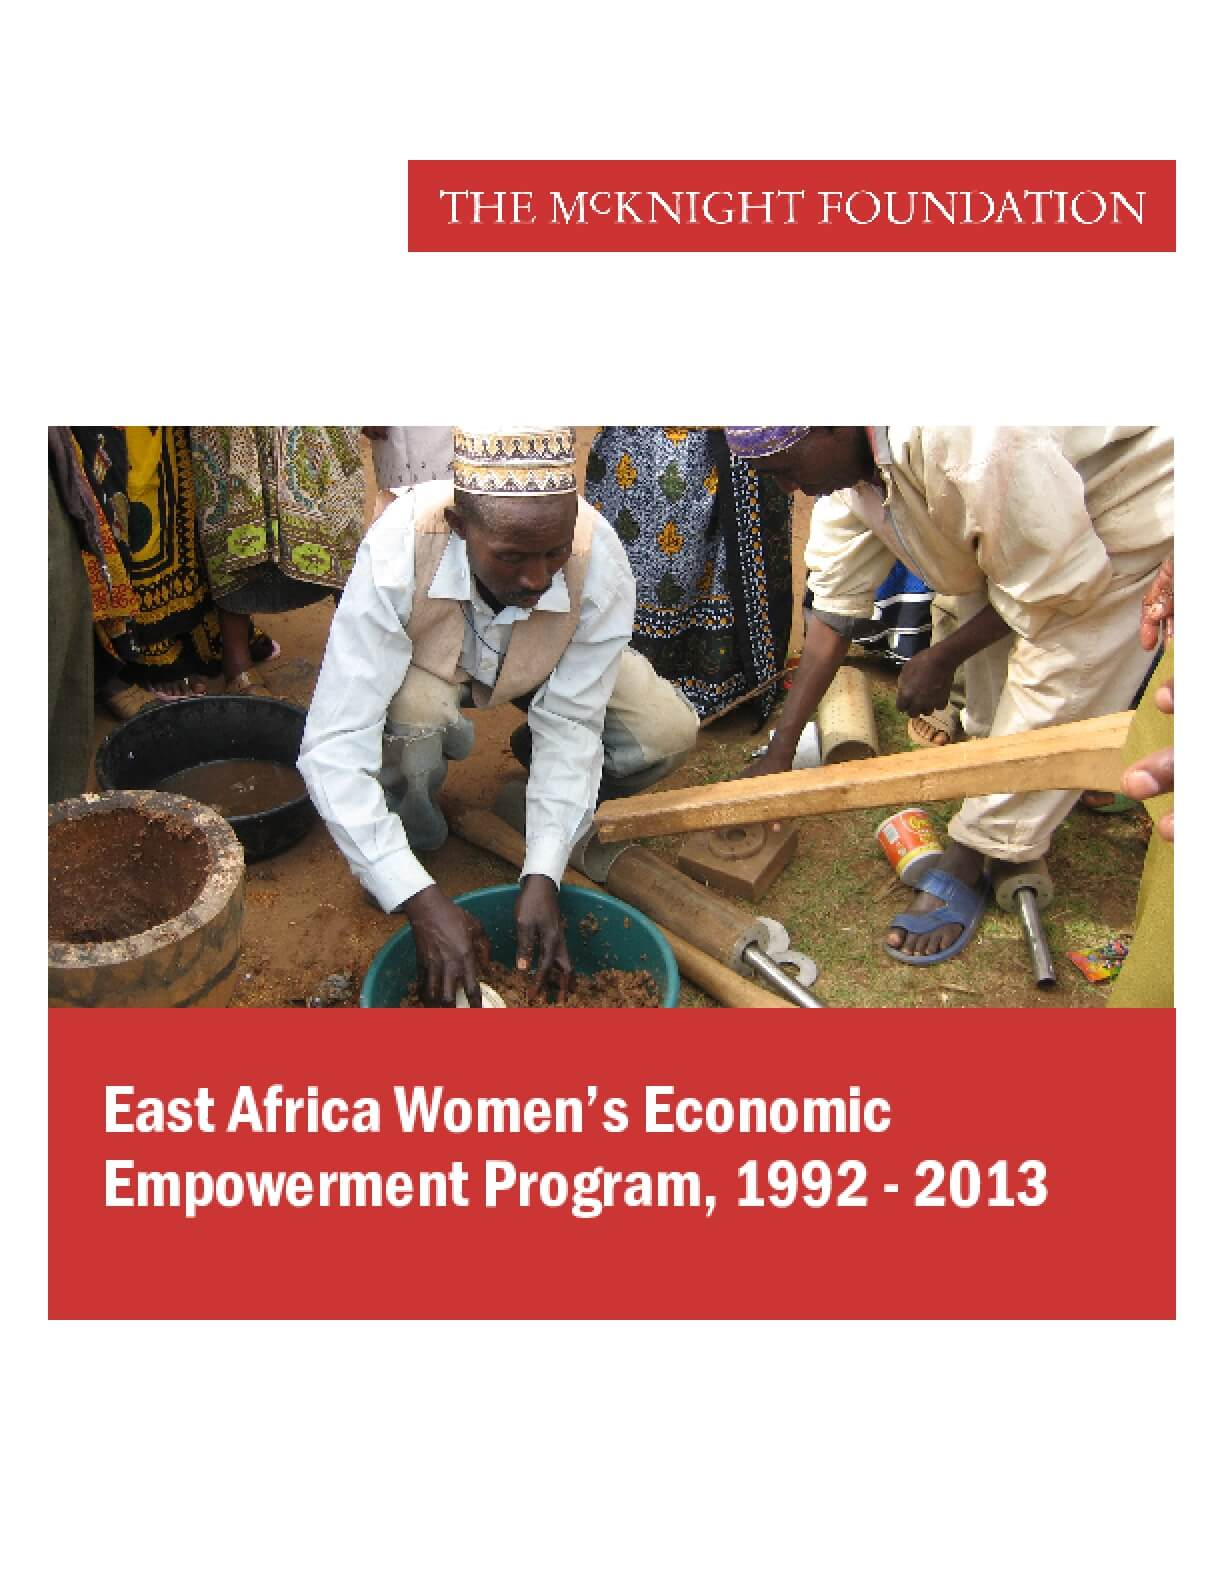 East Africa Women's Economic Empowerment Program, 1992-2013